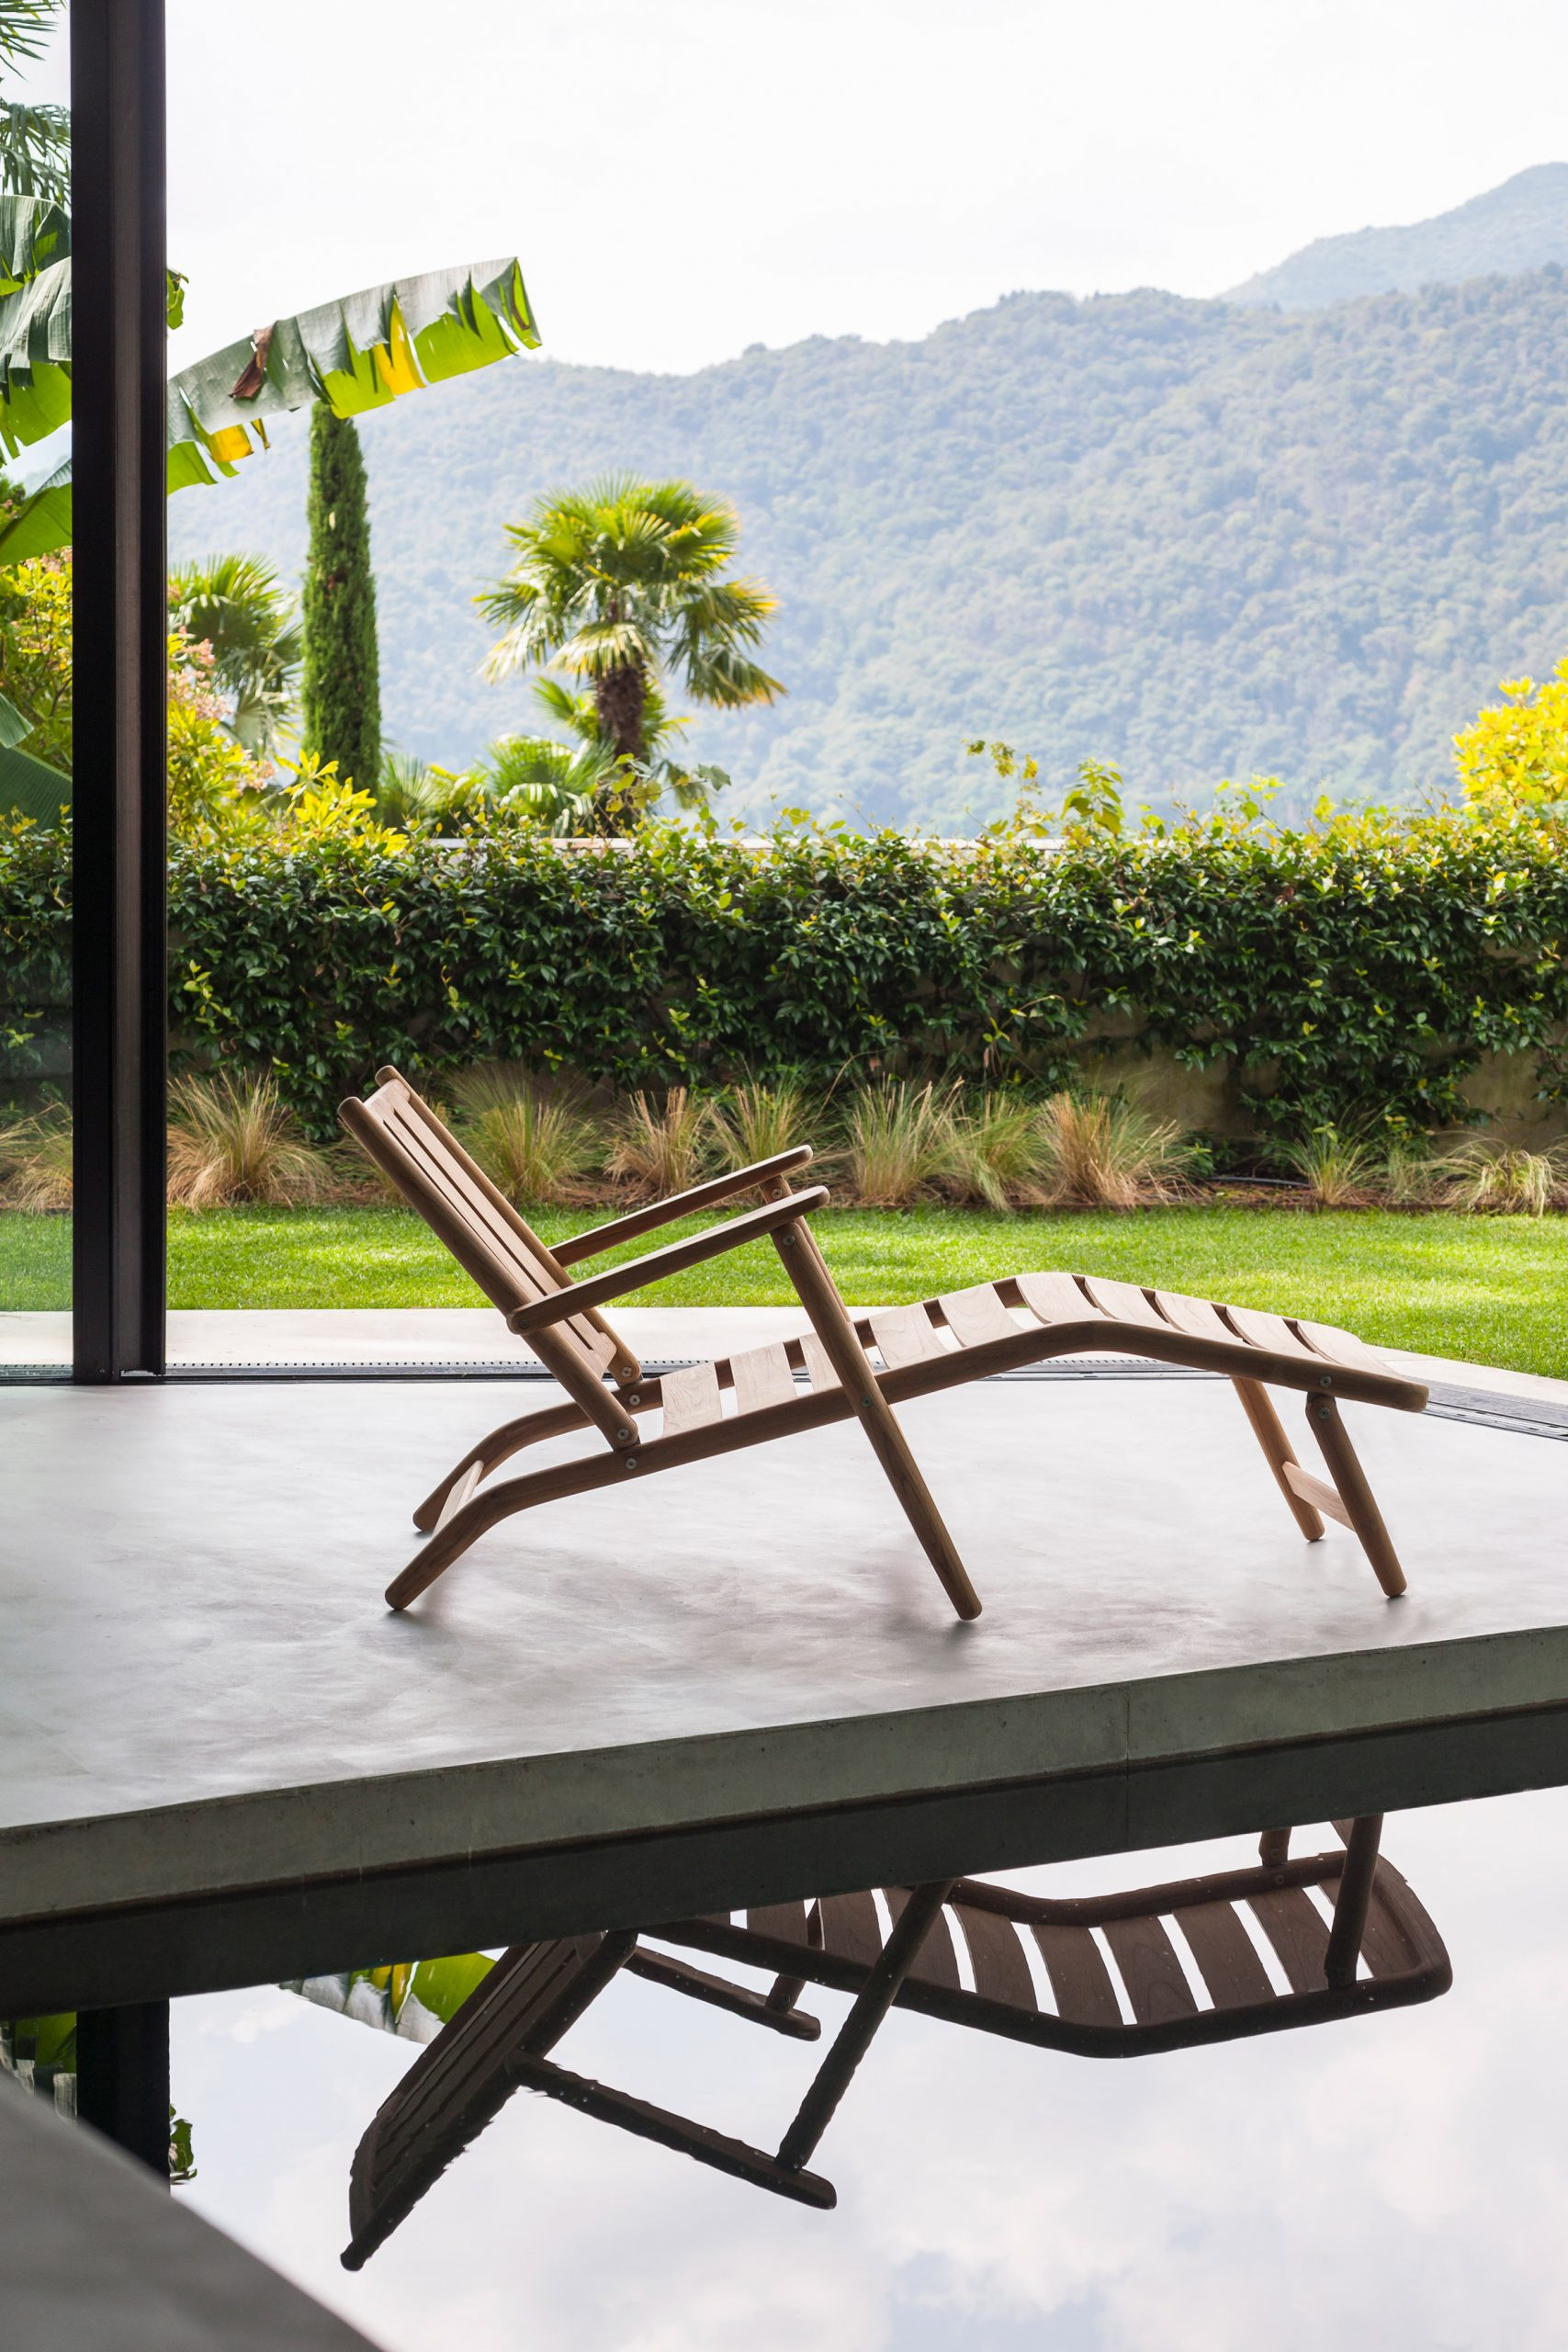 Teak wood chaise-longue by Roda in front of a pool